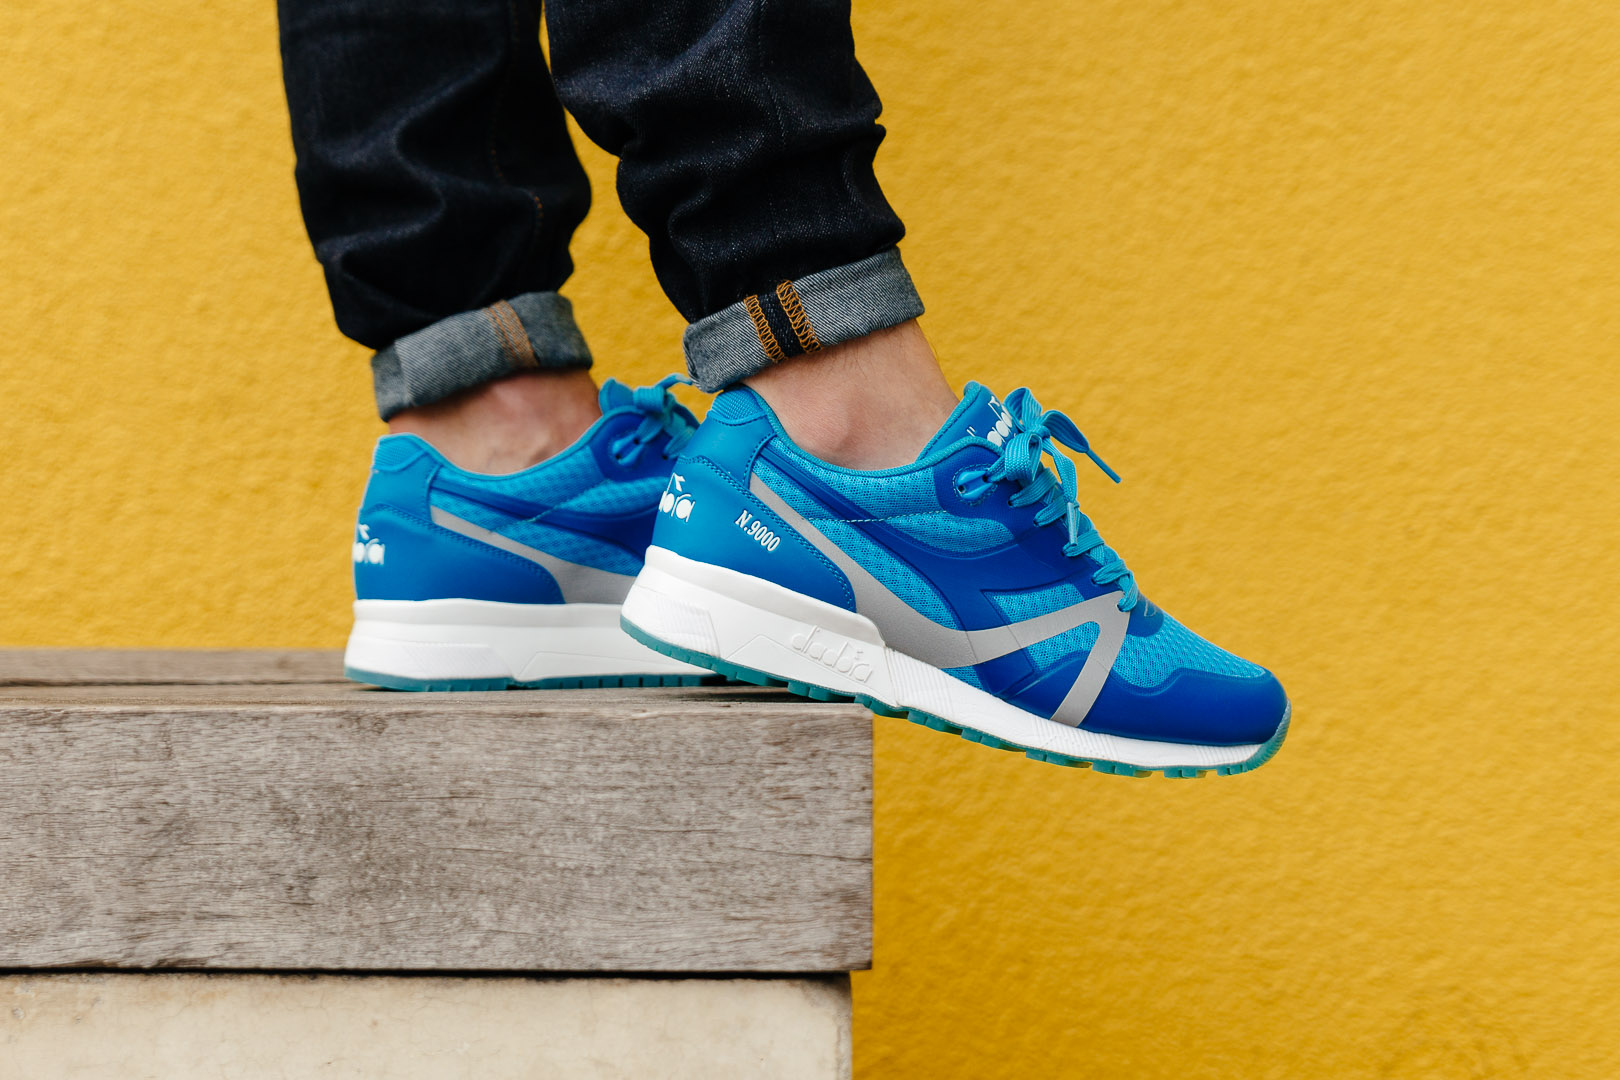 DIADORA-N9000-MM-BRIGHT-BLUE-FLUO-0718-INS-SoleHeaven-FOOT-OTF.jpg